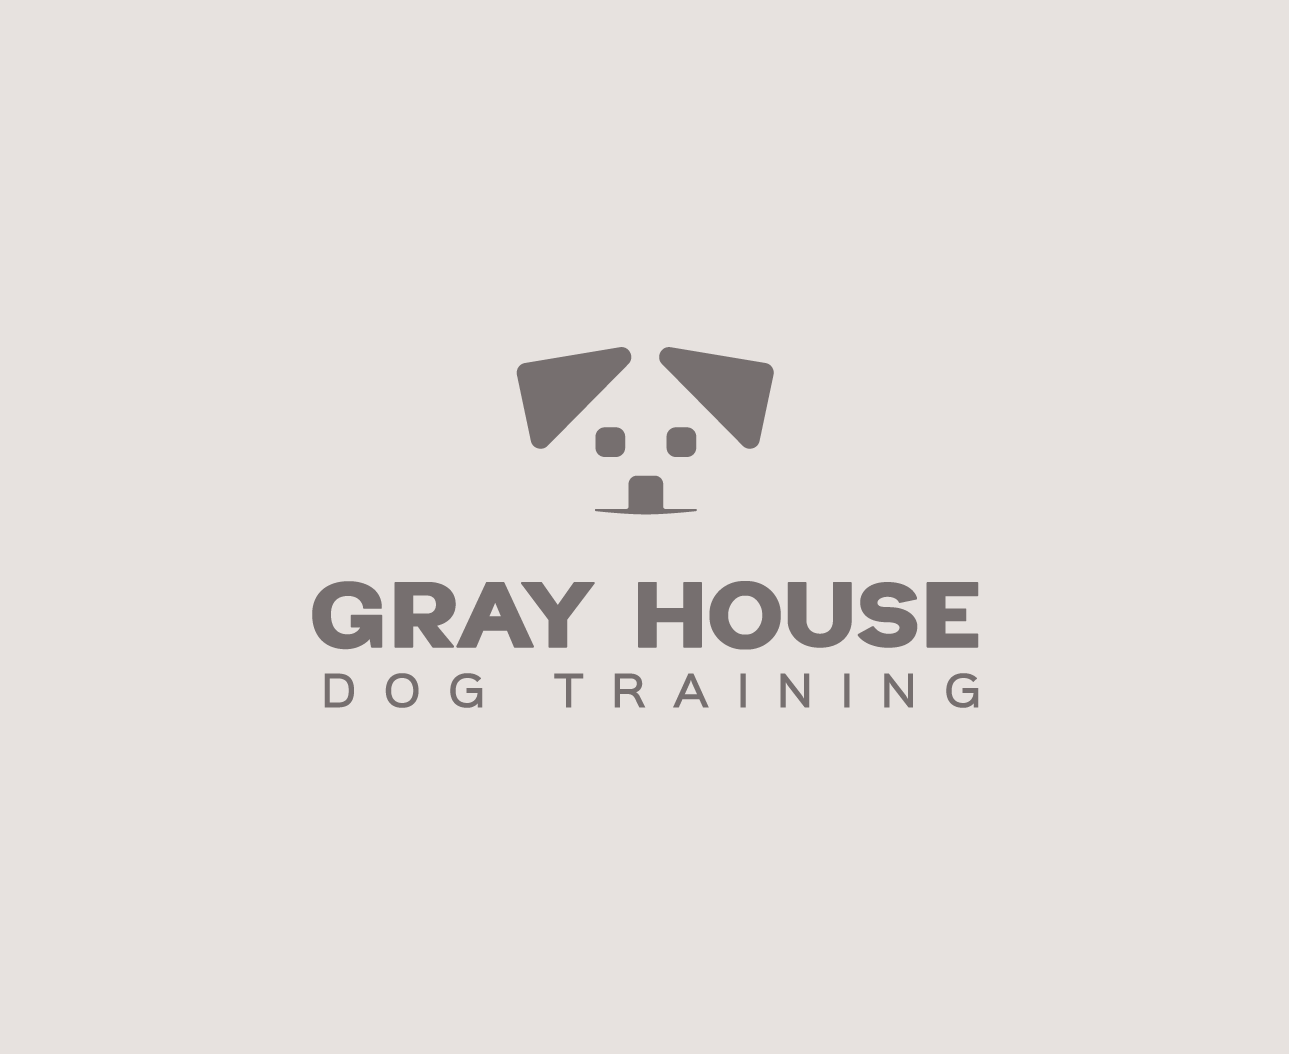 Gray House Dog Training Logo